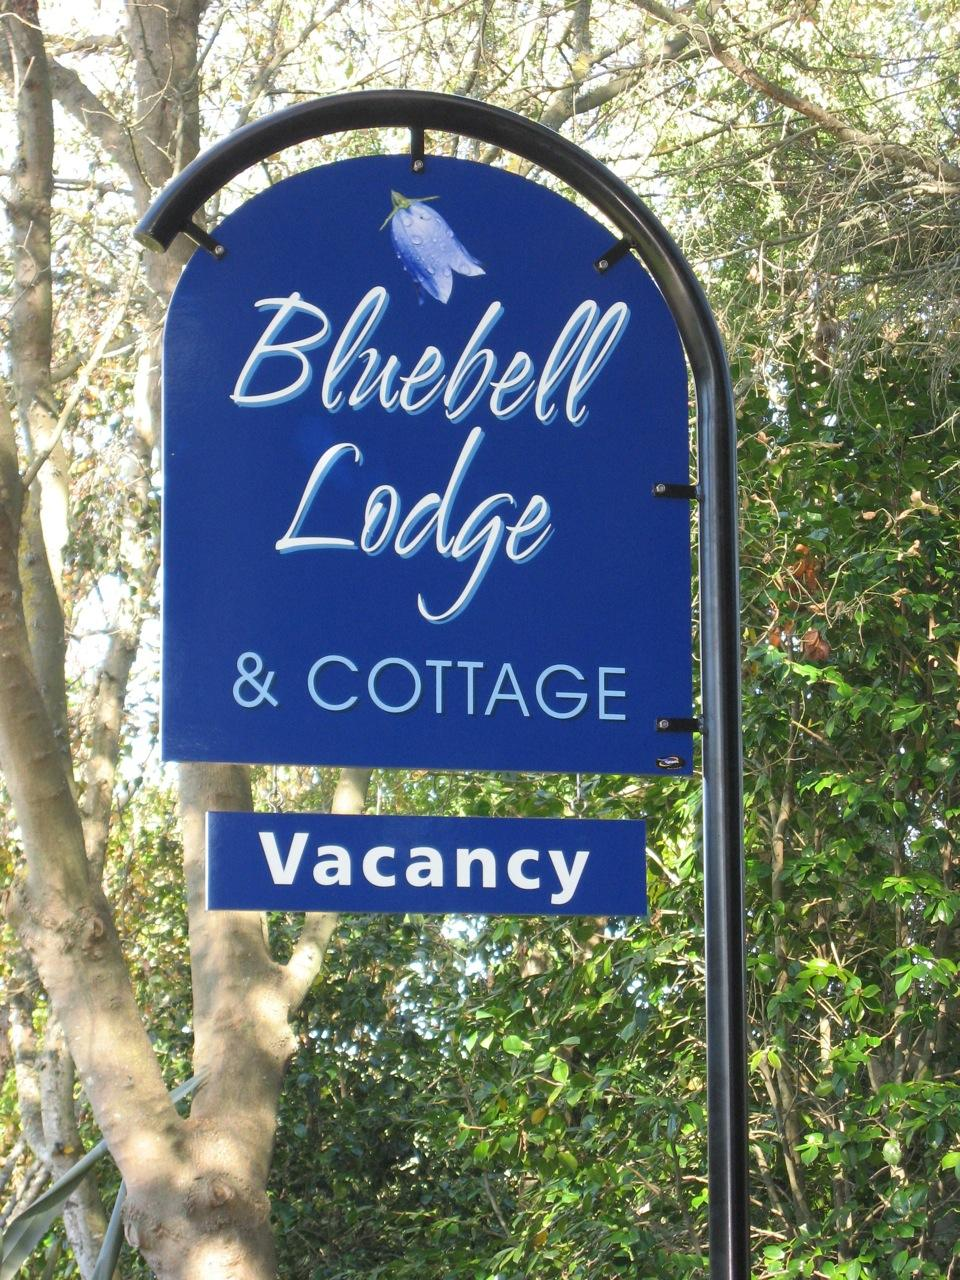 Bluebell Lodge & Cottages